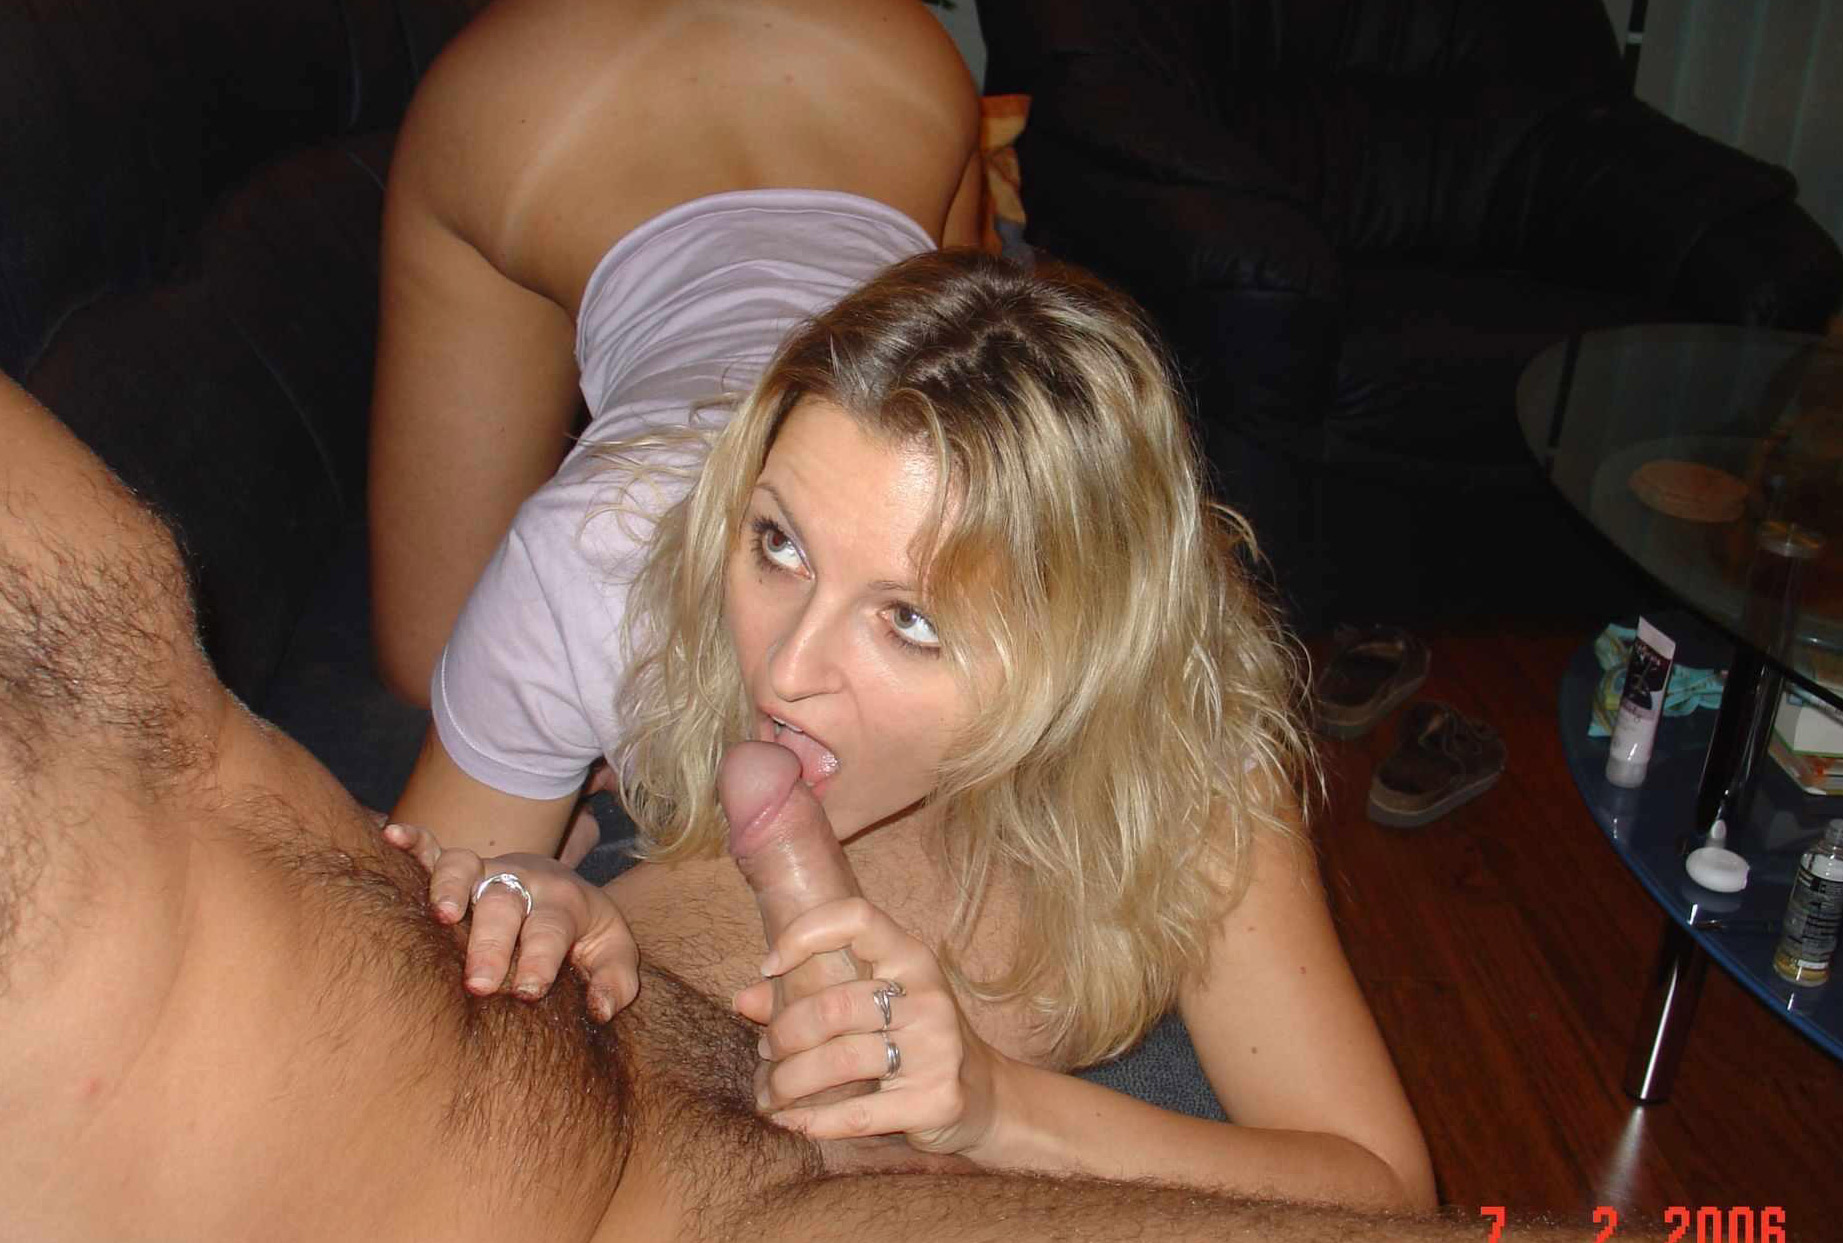 Blowjob and a mouthful of cum